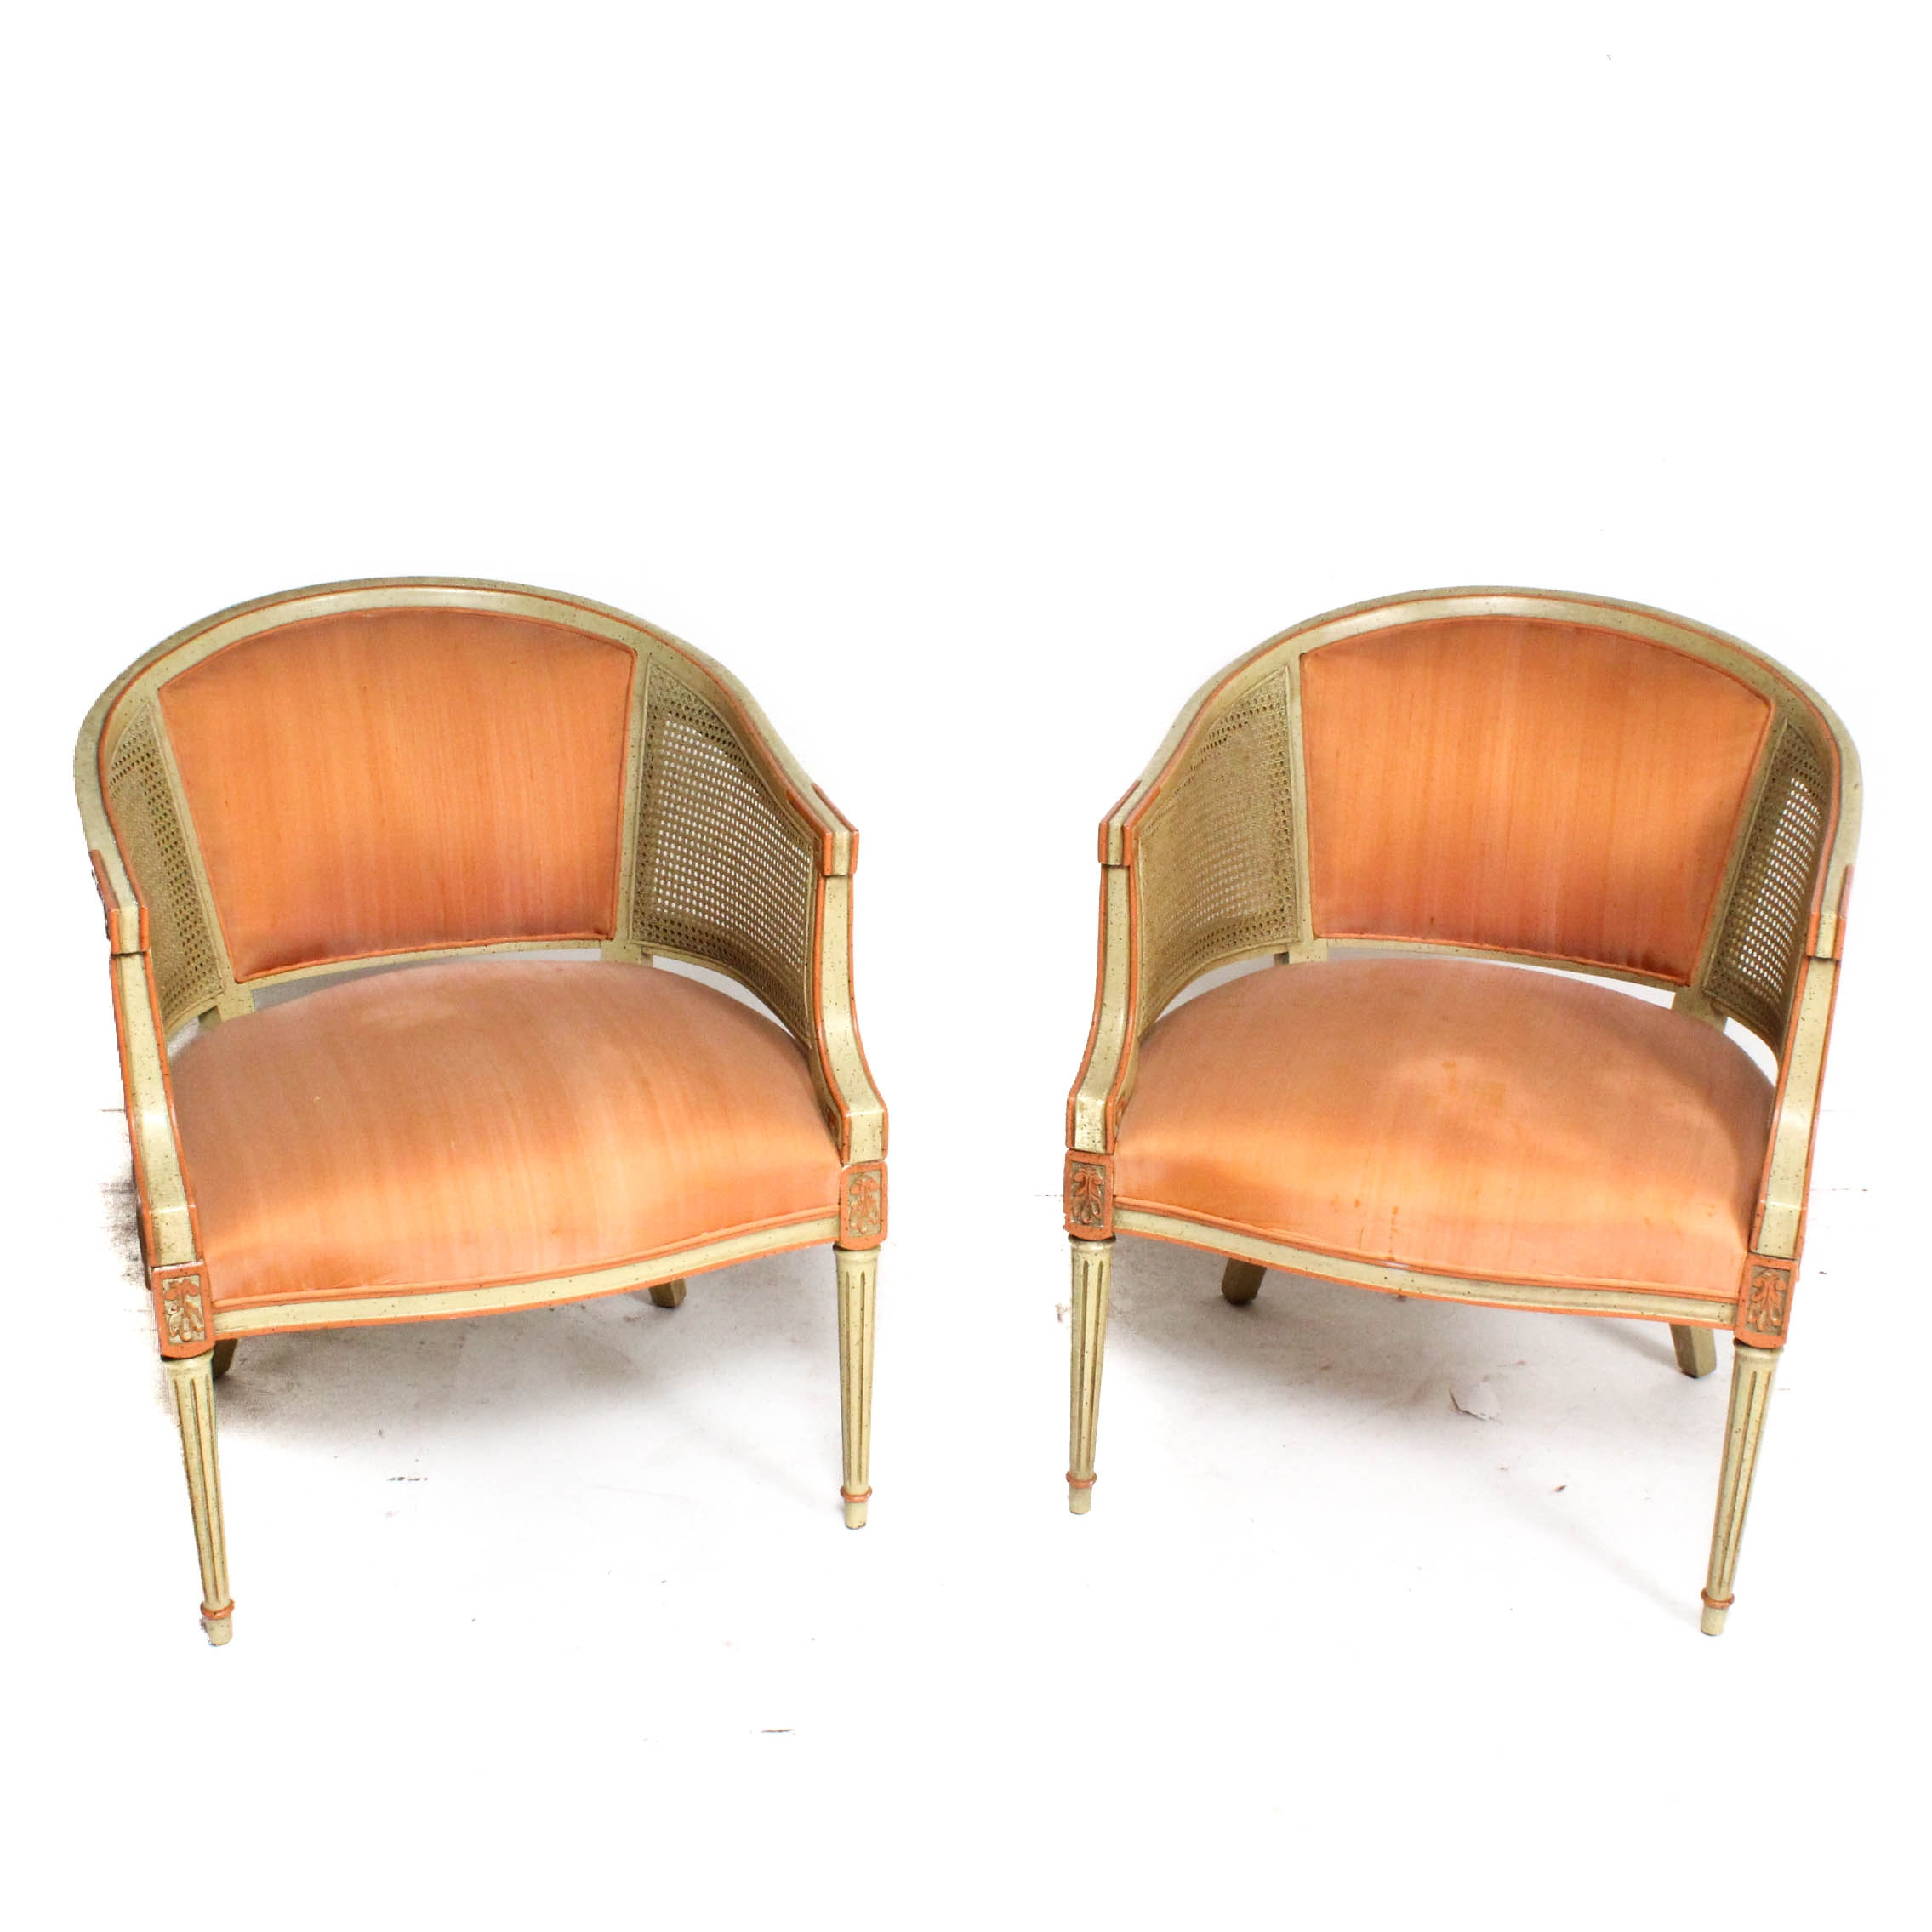 Upholstered Barrel Chairs